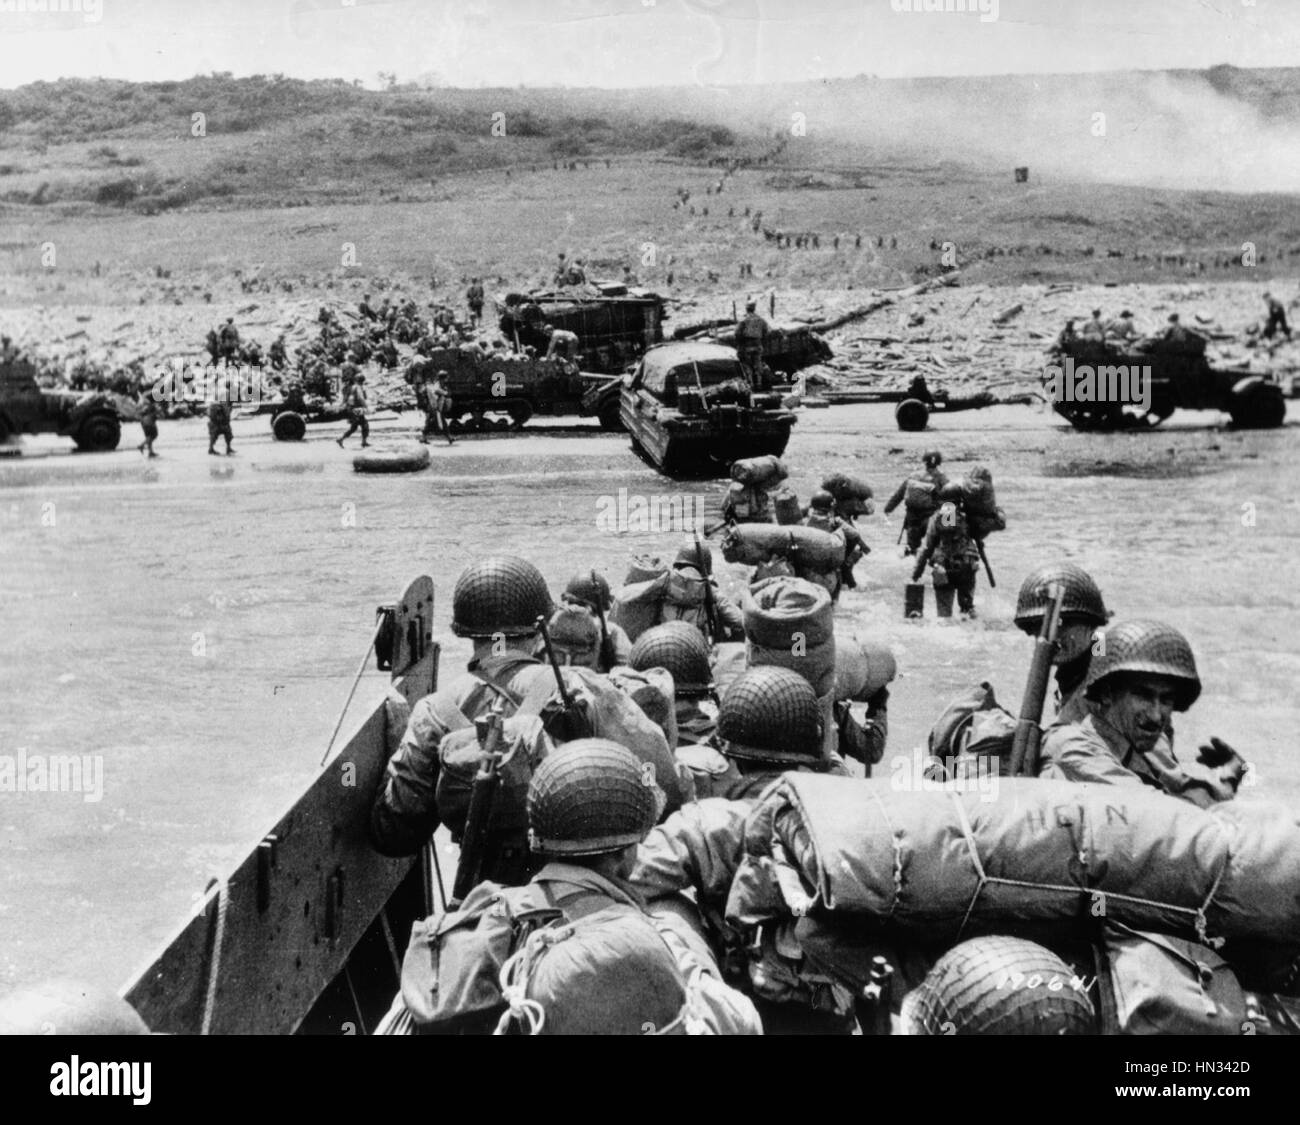 Normandy, France, June 6, 1944. D-Day, the Allied soldiers ...